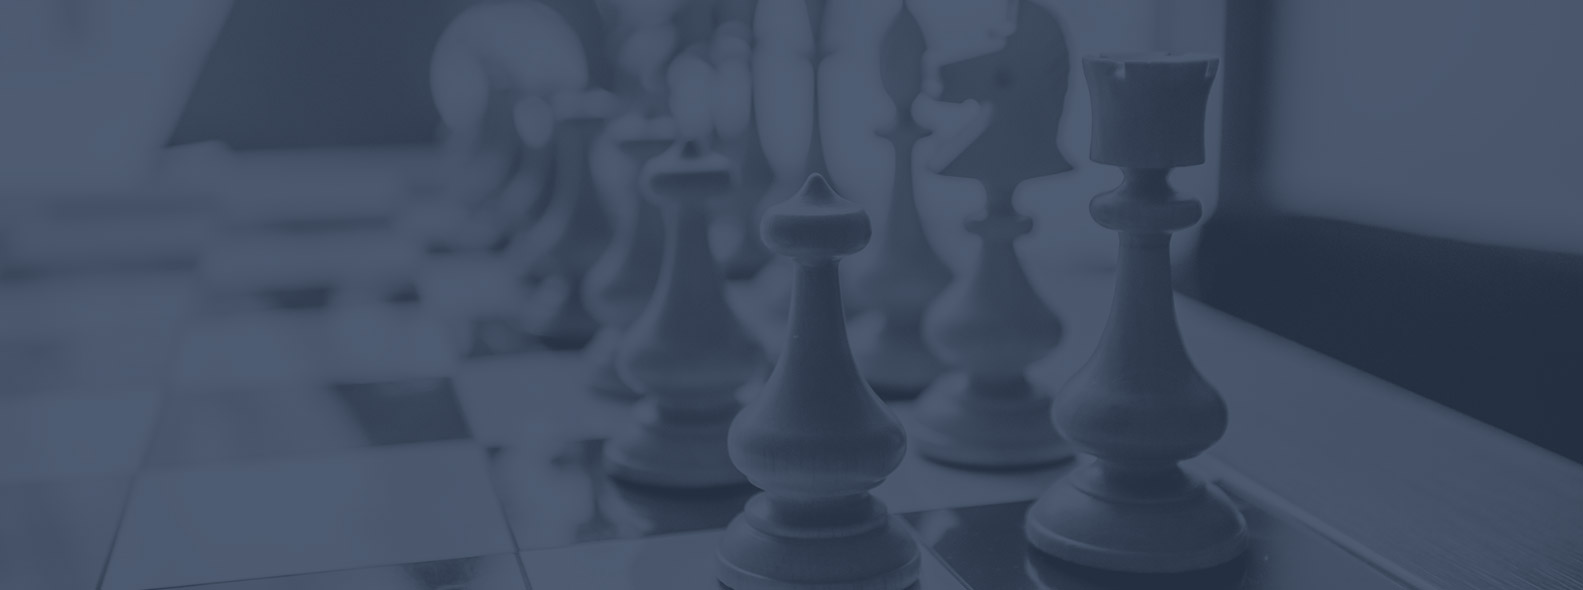 Chess pieces on a board representing containing costs for daily operations with due diligence services